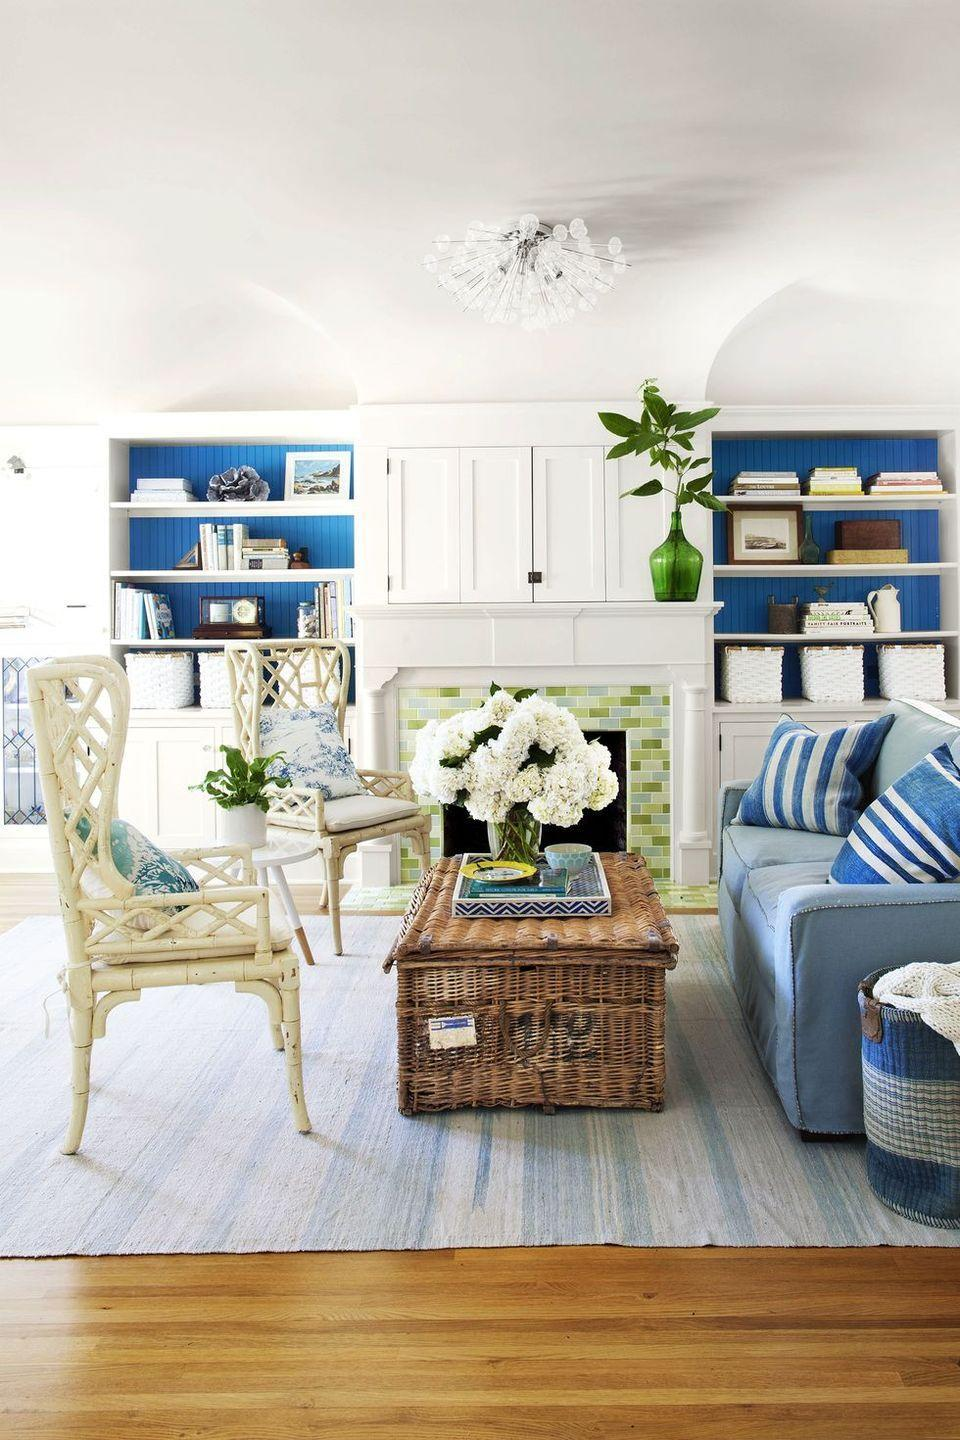 """<p>A bright blue was Pantone's Color of the Year in 2020, and you'll probably continue to see it this year, too. It works particularly well when paired with green, as the colors remind us of the great outdoors. """"Both of these colors are so versatile and can work as an accent wall in a dark tone, as a pop of color in pillows or a rug, or even as a statement sofa in your space,"""" says Lee Mayer, CEO of the online interior design service <a href=""""https://go.redirectingat.com?id=74968X1596630&url=https%3A%2F%2Fhavenly.com%2Finterior-design-ideas&sref=https%3A%2F%2Fwww.redbookmag.com%2Fhome%2Fg35149665%2Fspring-colors%2F"""" rel=""""nofollow noopener"""" target=""""_blank"""" data-ylk=""""slk:Havenly"""" class=""""link rapid-noclick-resp"""">Havenly</a>. """"Depending on the tones and fabrics you choose, both of these colors can play into any style really well — an emerald velvet sofa can feel really luxe while blue linen pillows can feel perfectly classic.""""<br></p>"""